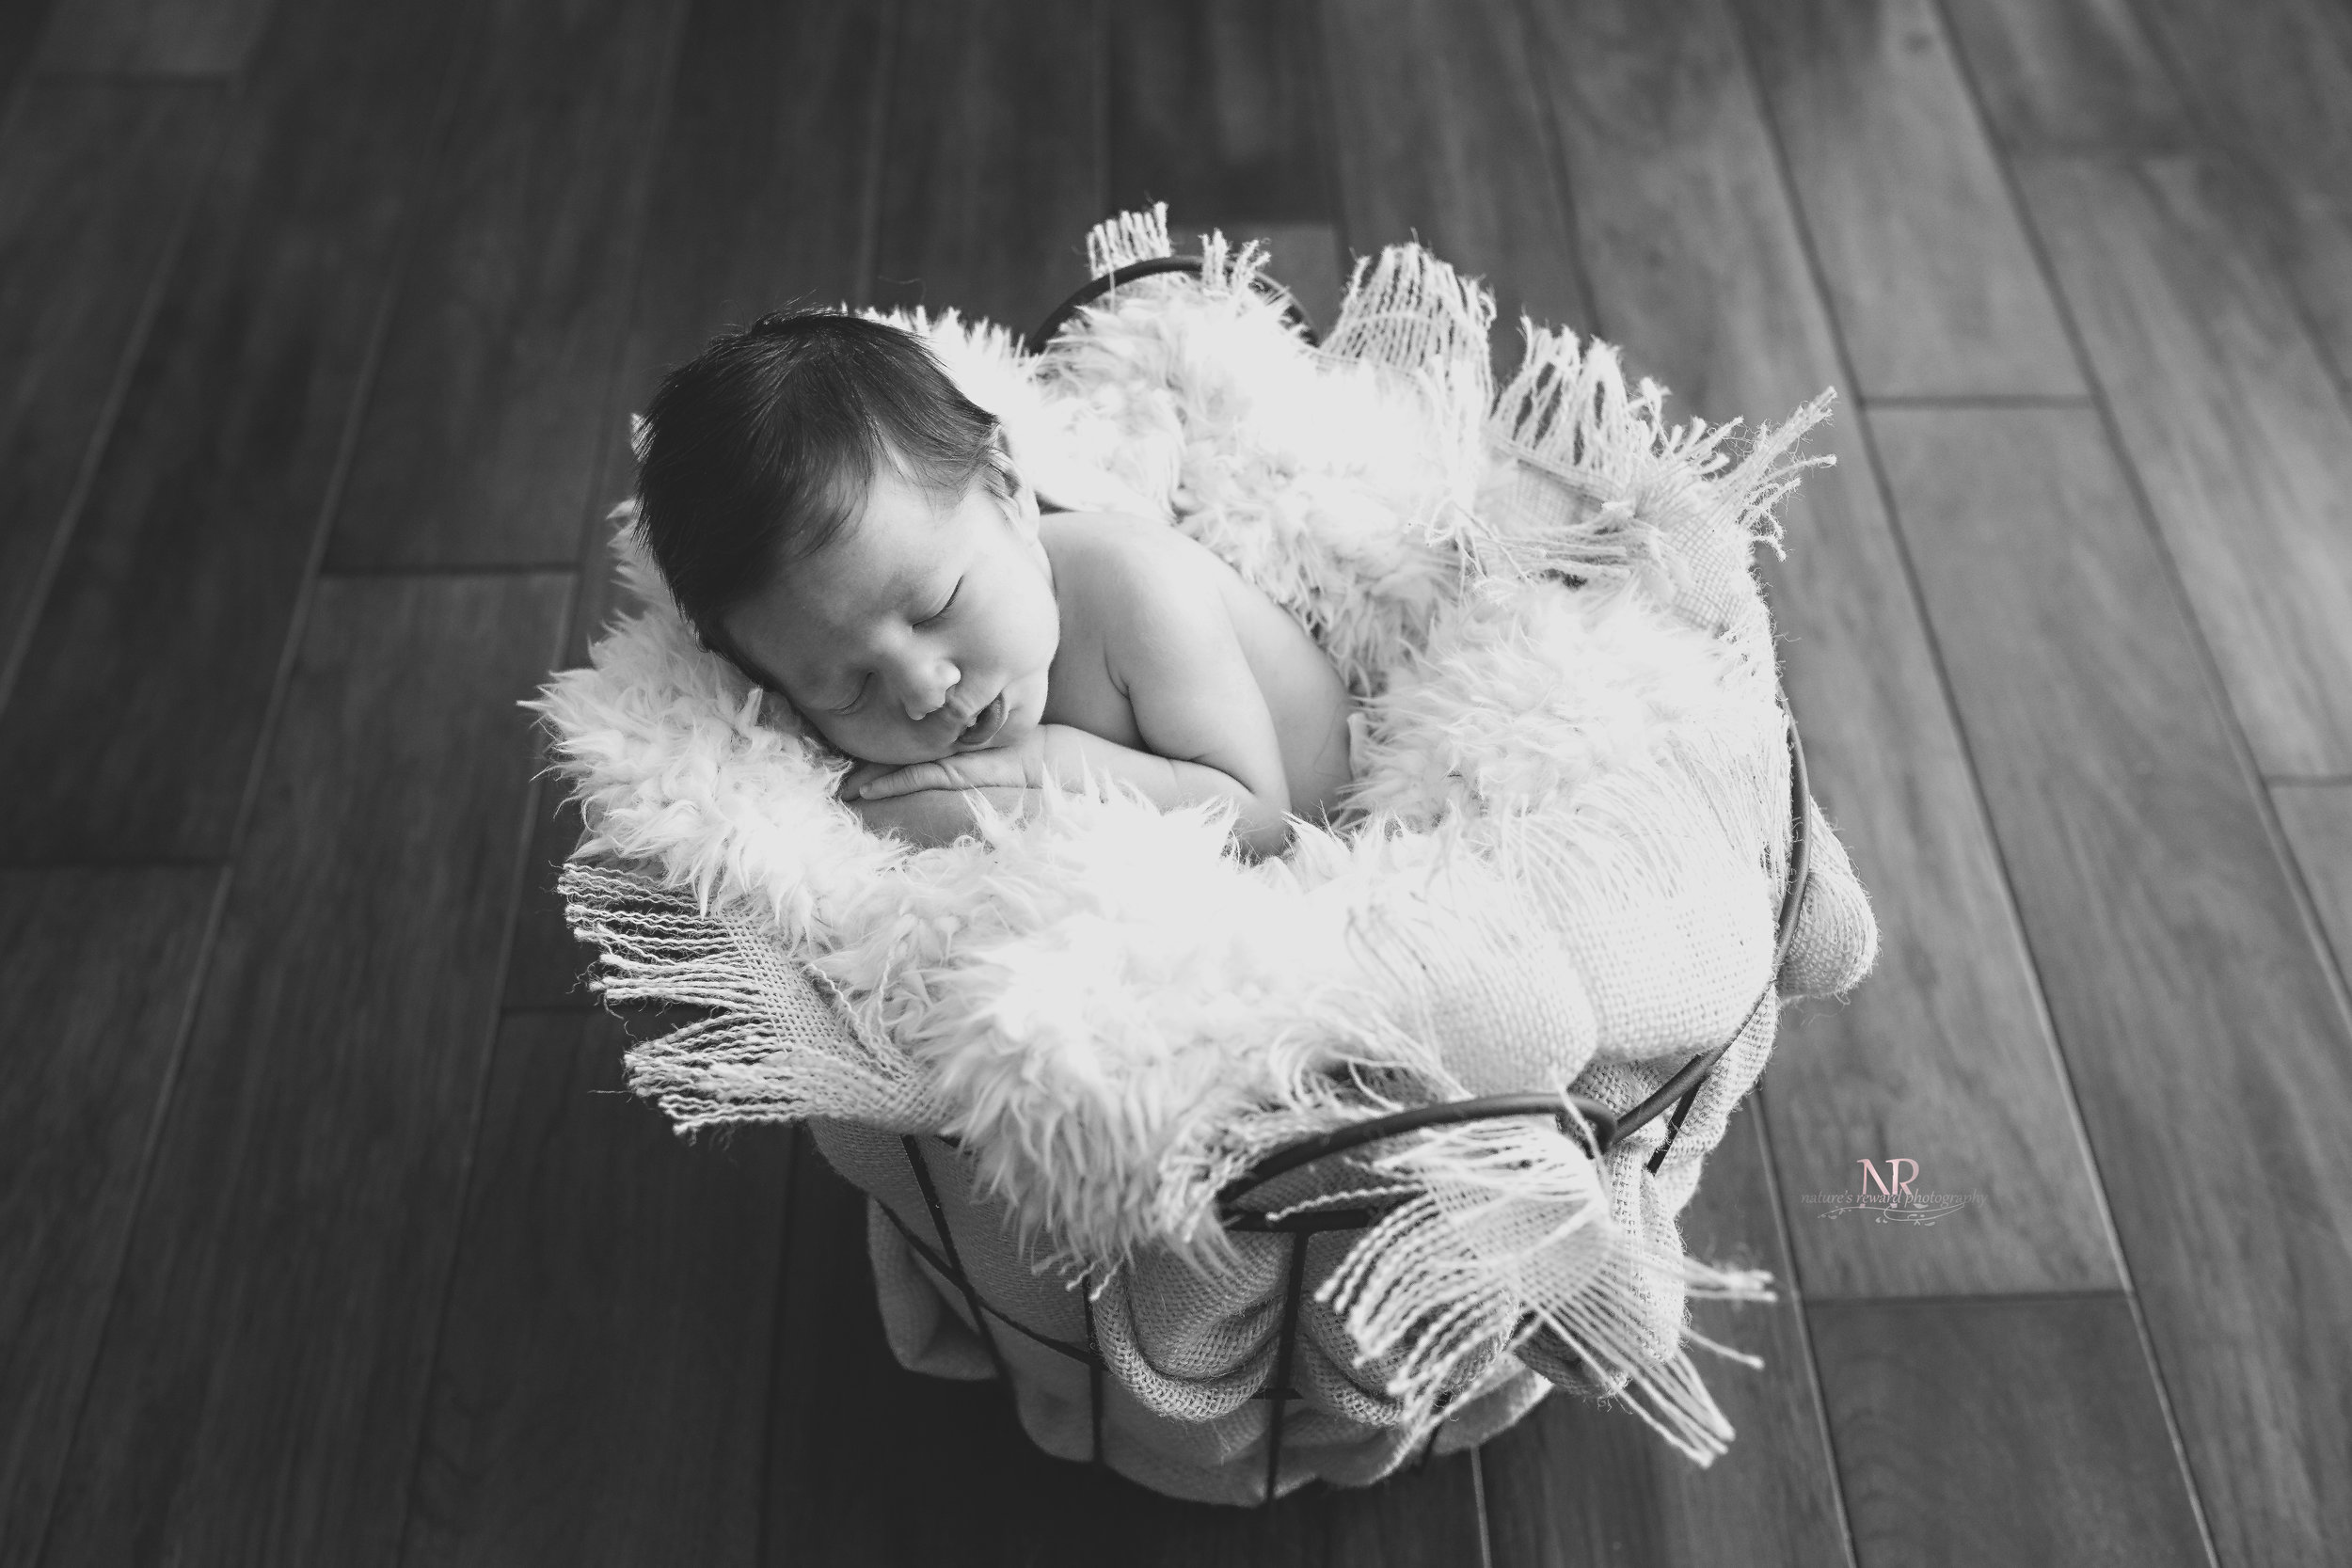 Because I have no idea how they will choose between color or black and white in this gorgeous newborn image.